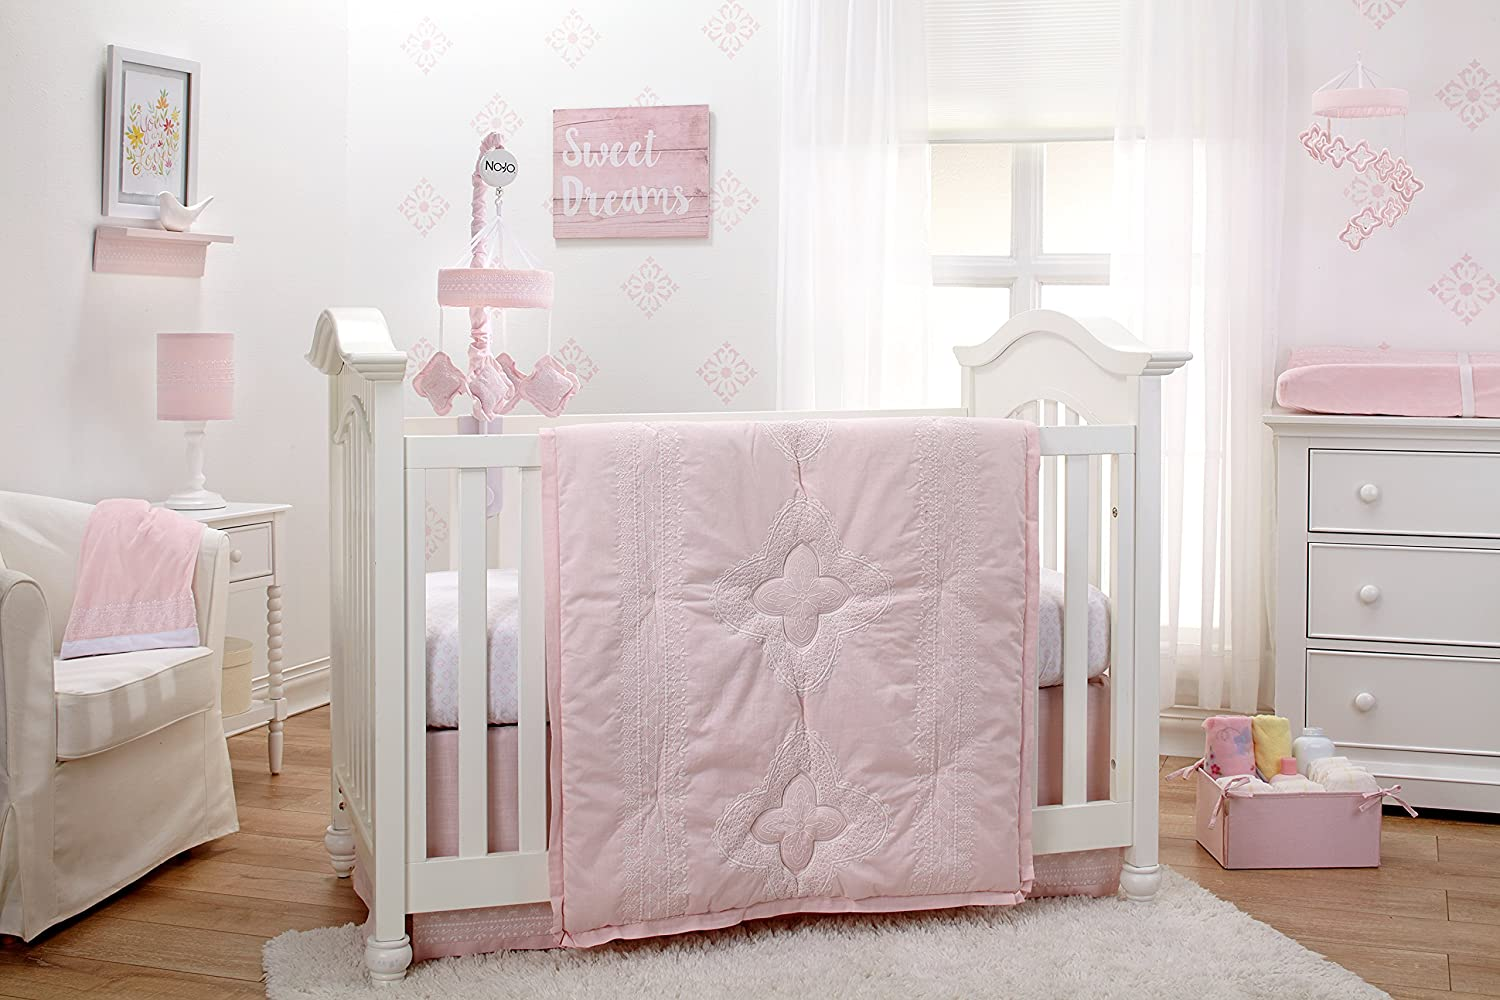 Amazon Com Nojo Chantilly 4 Piece Nursery Crib Bedding Set Pink